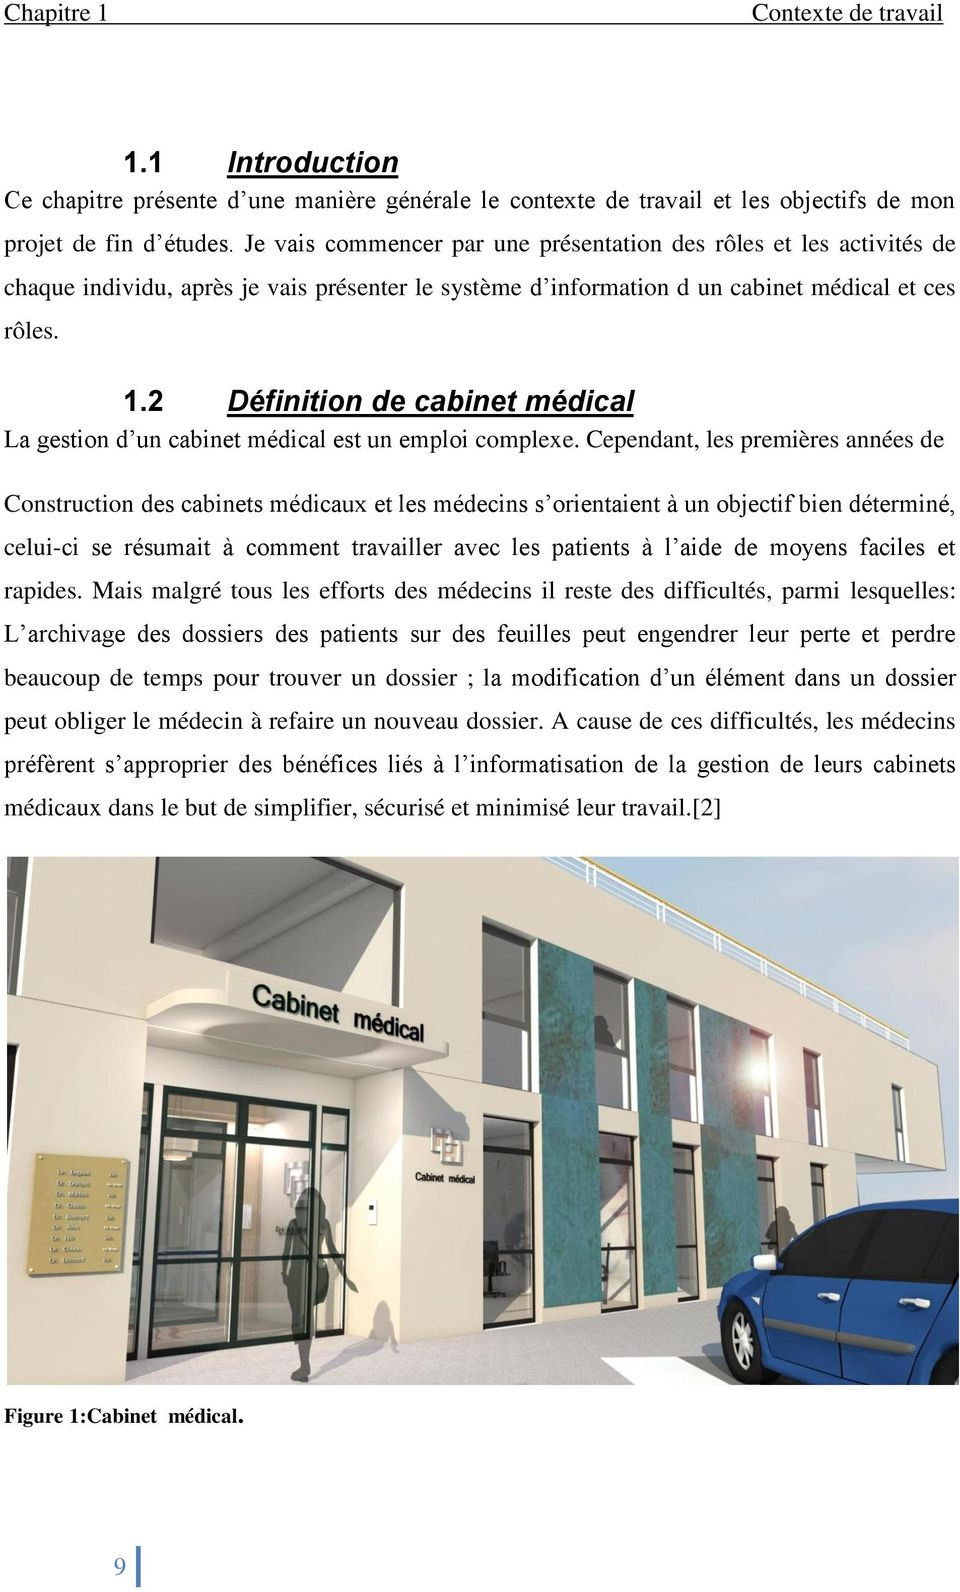 R publique alg rienne d mocratique et populaire universit abou bakr belkaid tlemcen facult - Cabinet medical republique ...